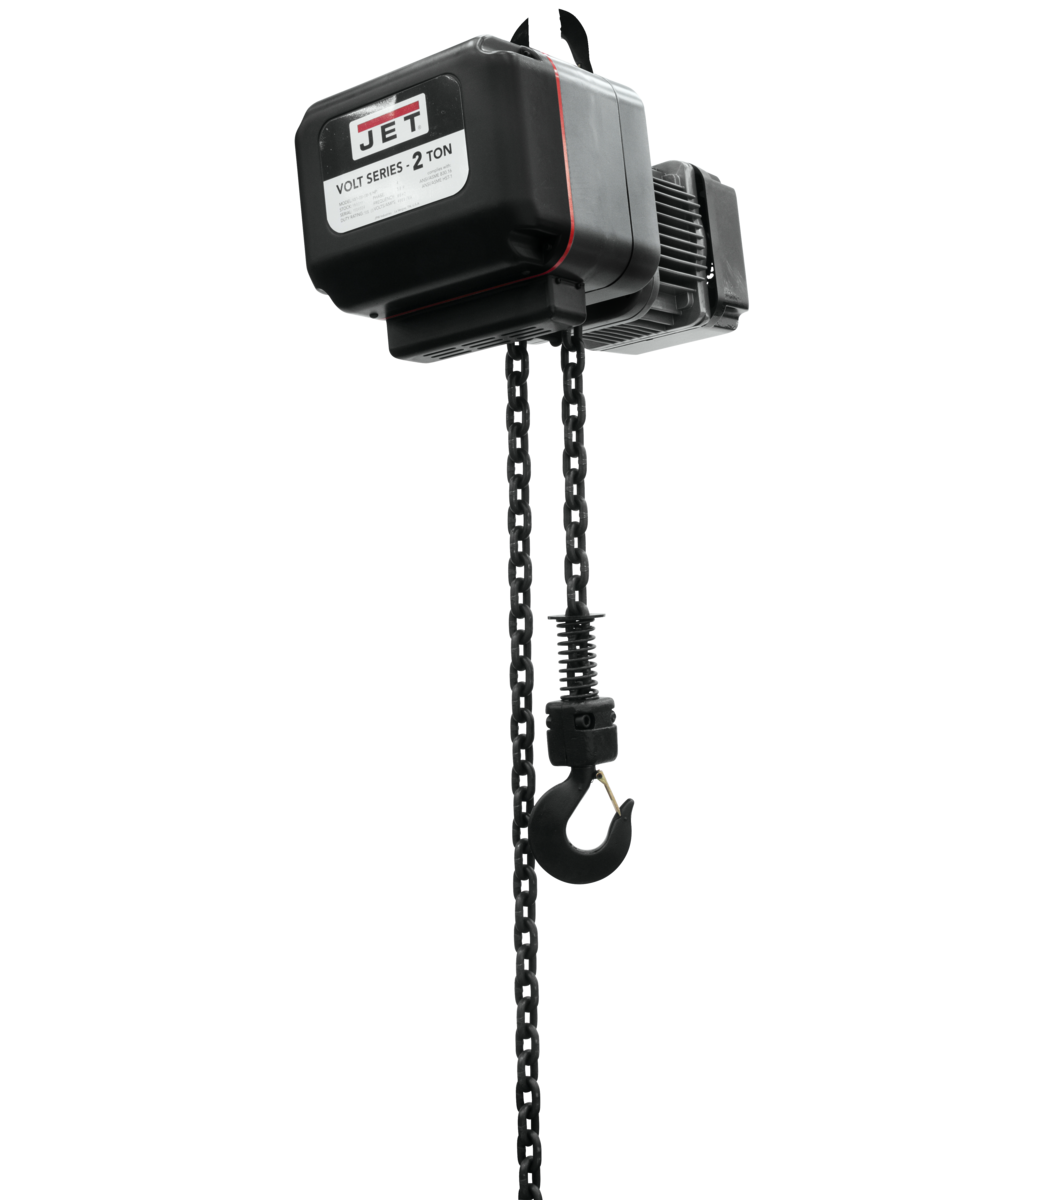 VOLT 2T VARIABLE-SPEED ELECTRIC HOIST 3PH 460V 10' LIFT